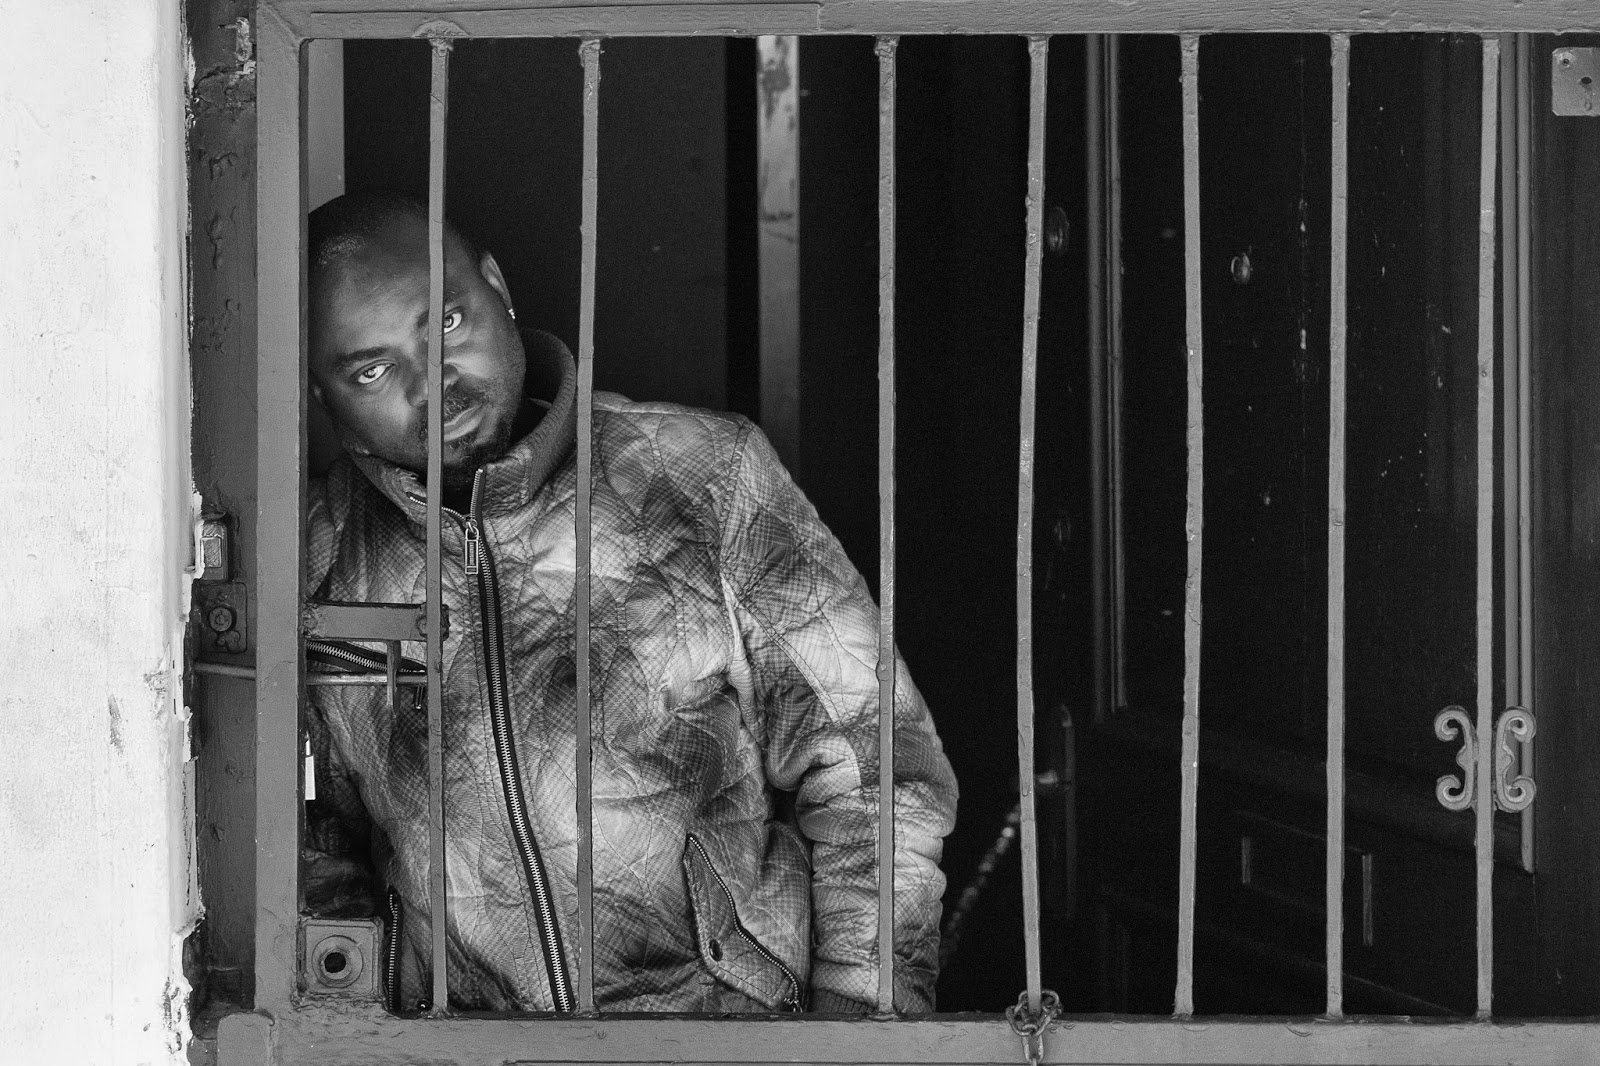 A man leans against a wall behind the bent bars of a security gate.